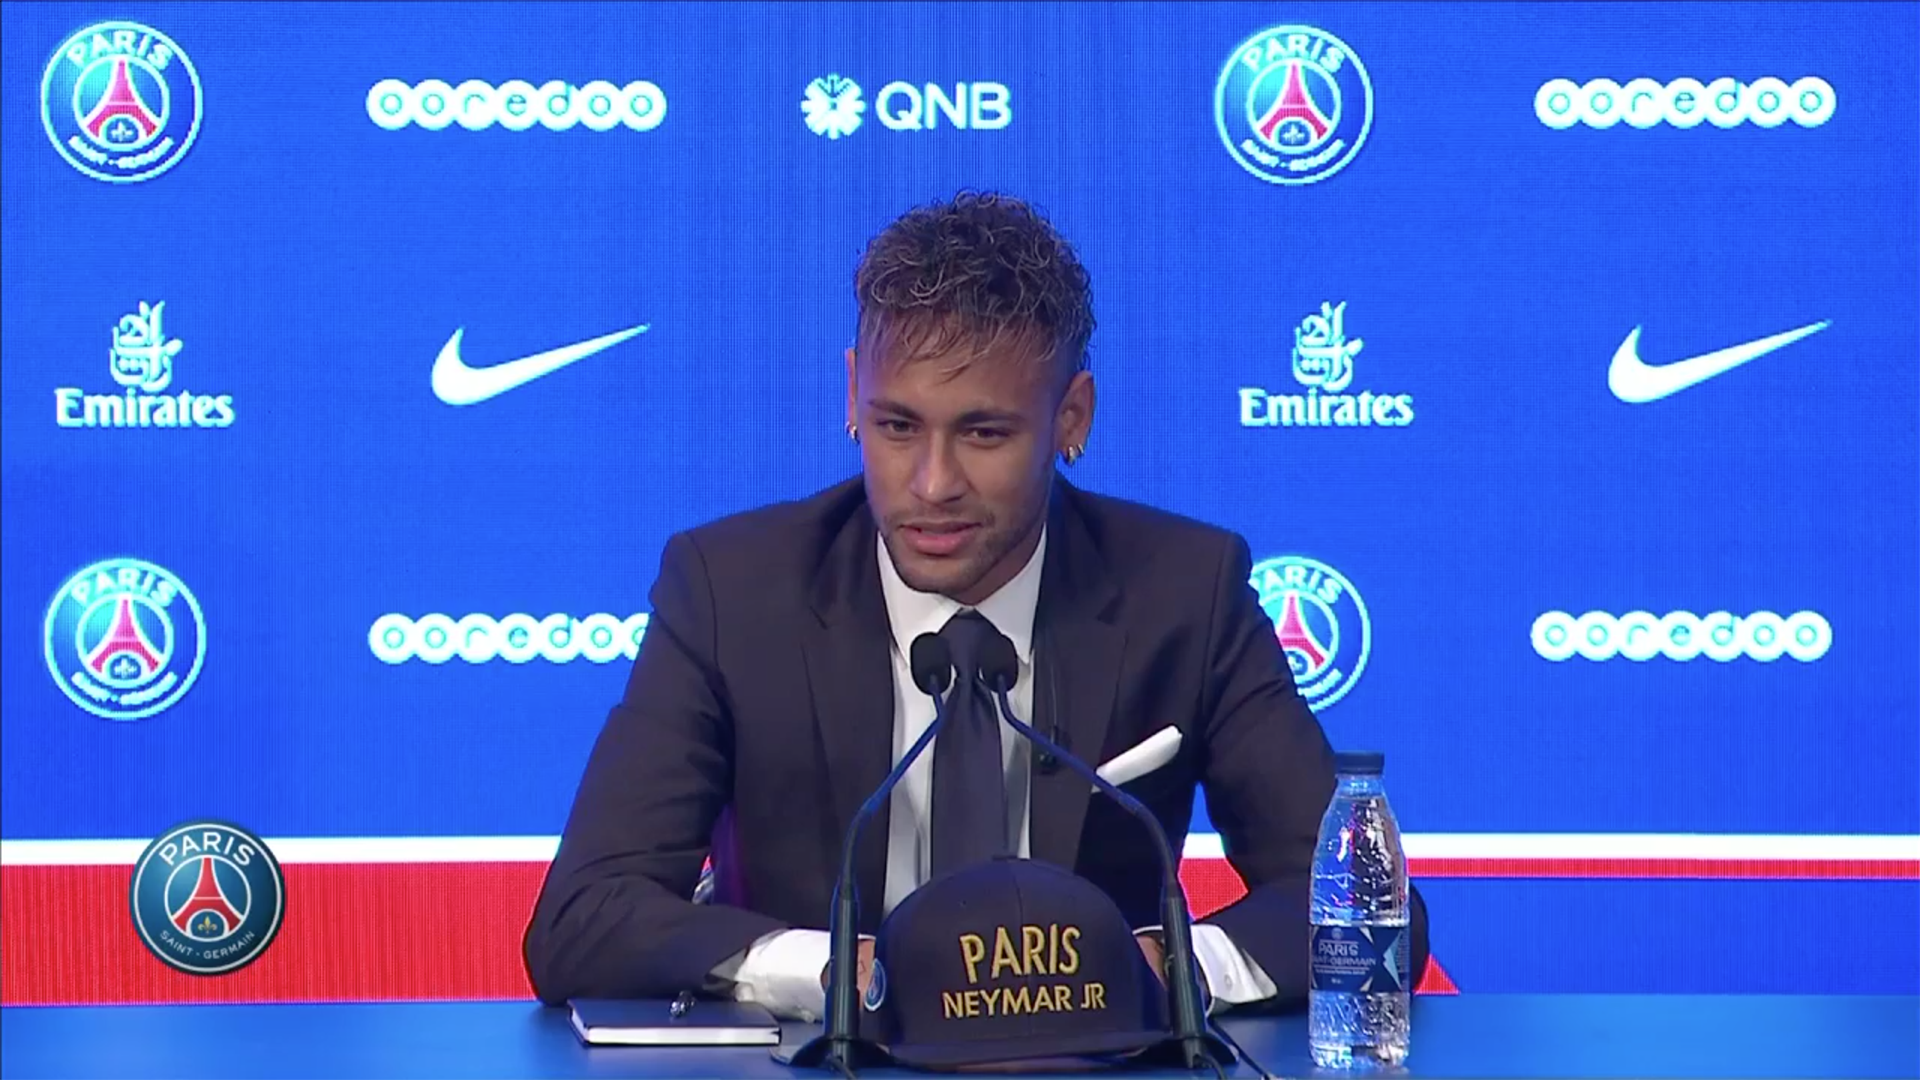 Neymar Unveiling screengrab 04082017